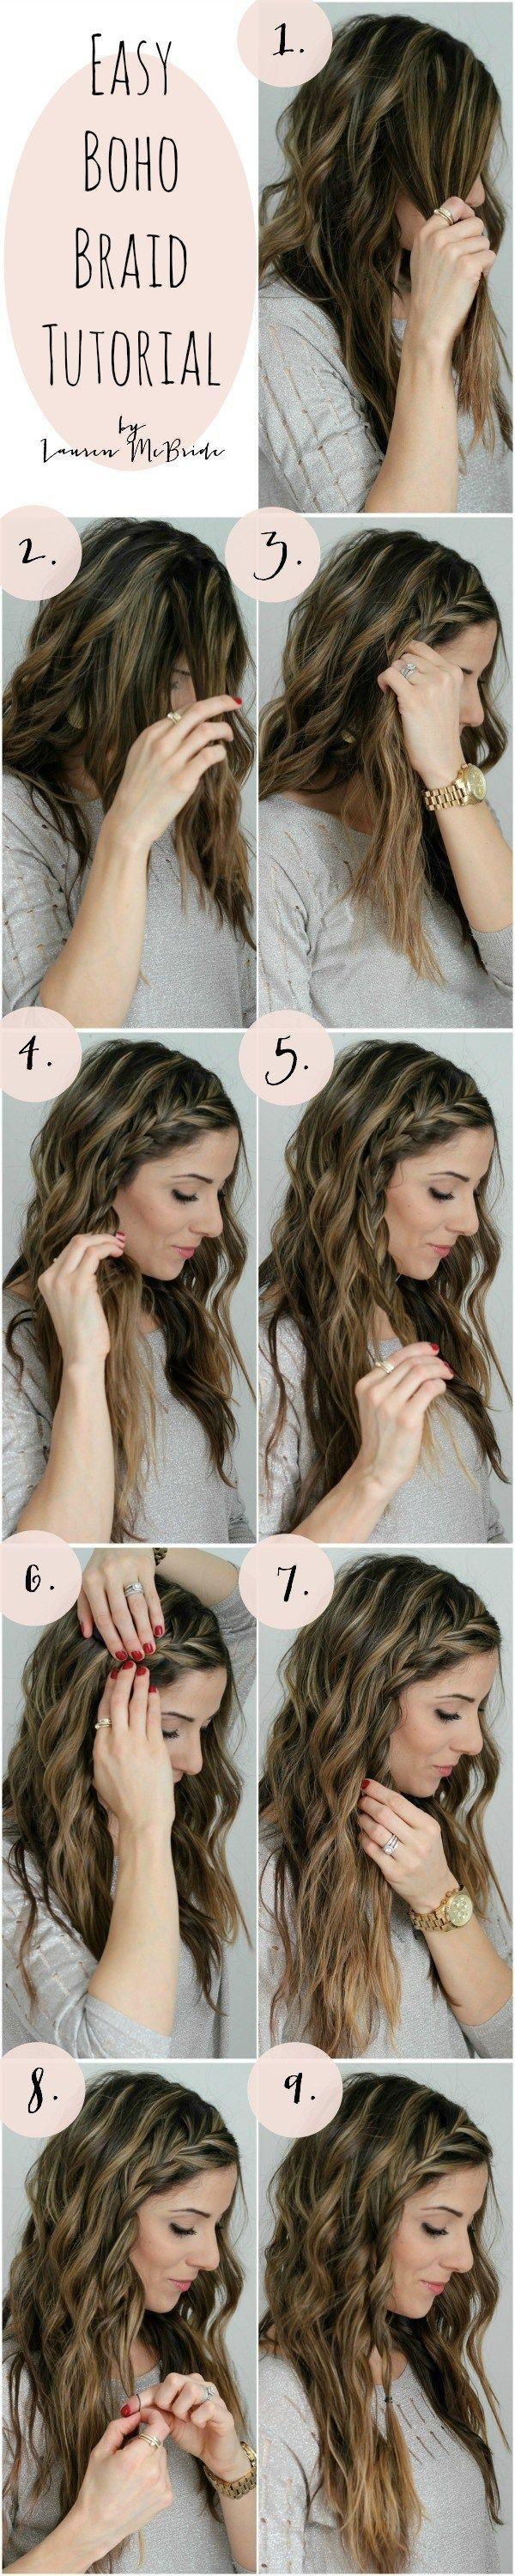 Easy Boho Braid Tutorial. Step by step how to braid your own hair. DIY wavy long hair style.